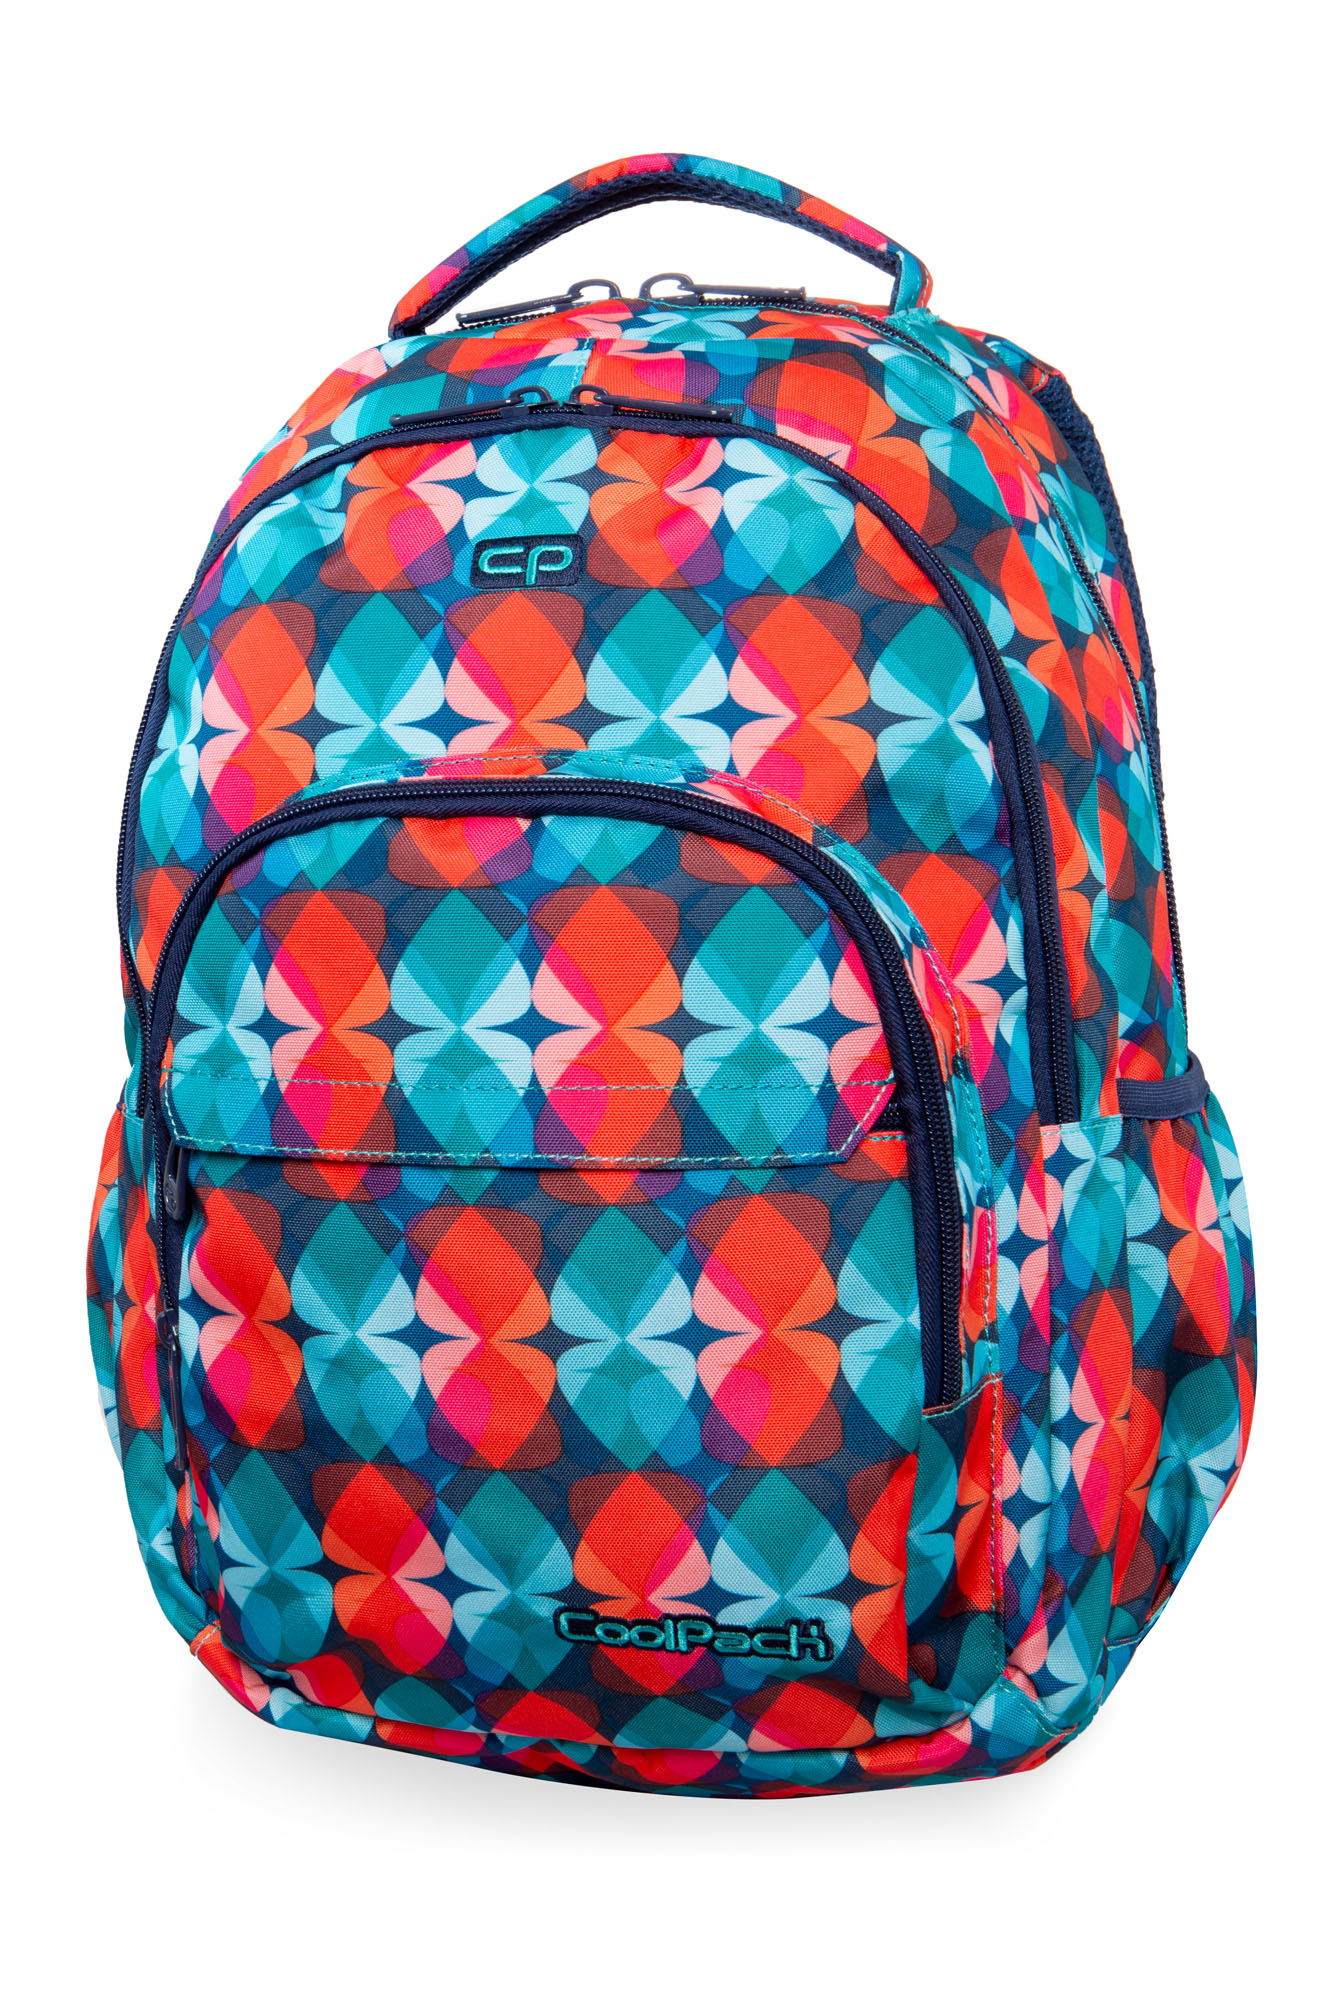 Coolpack - basic plus - youth backpack - magic leaves